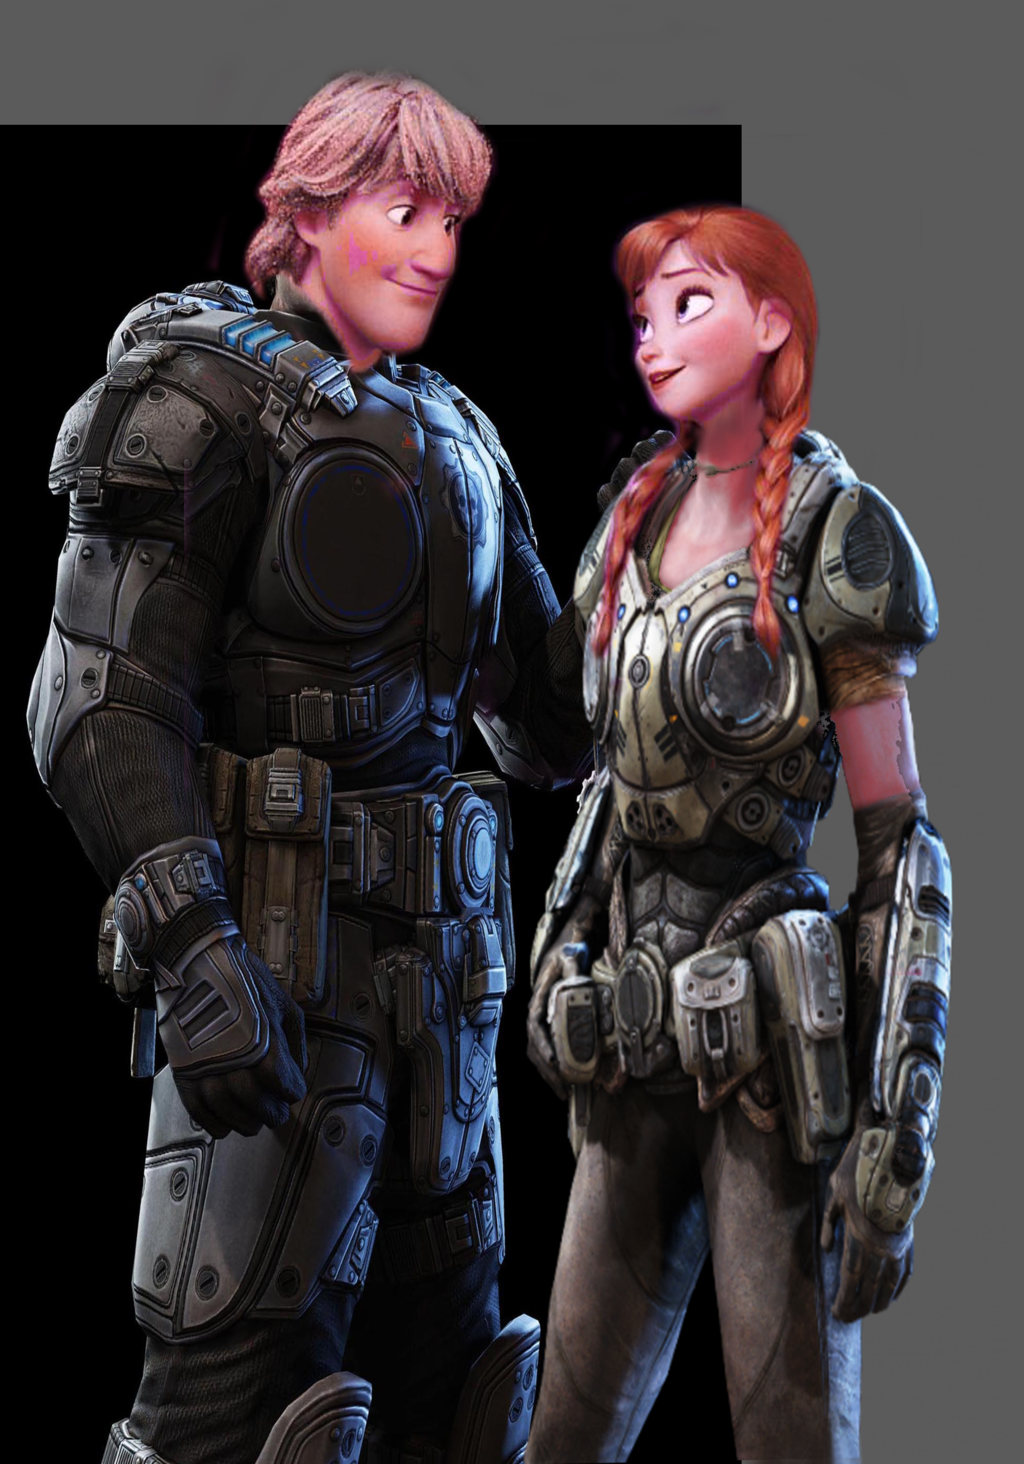 image kristoff and anna gears of war by authress d84wkdx png